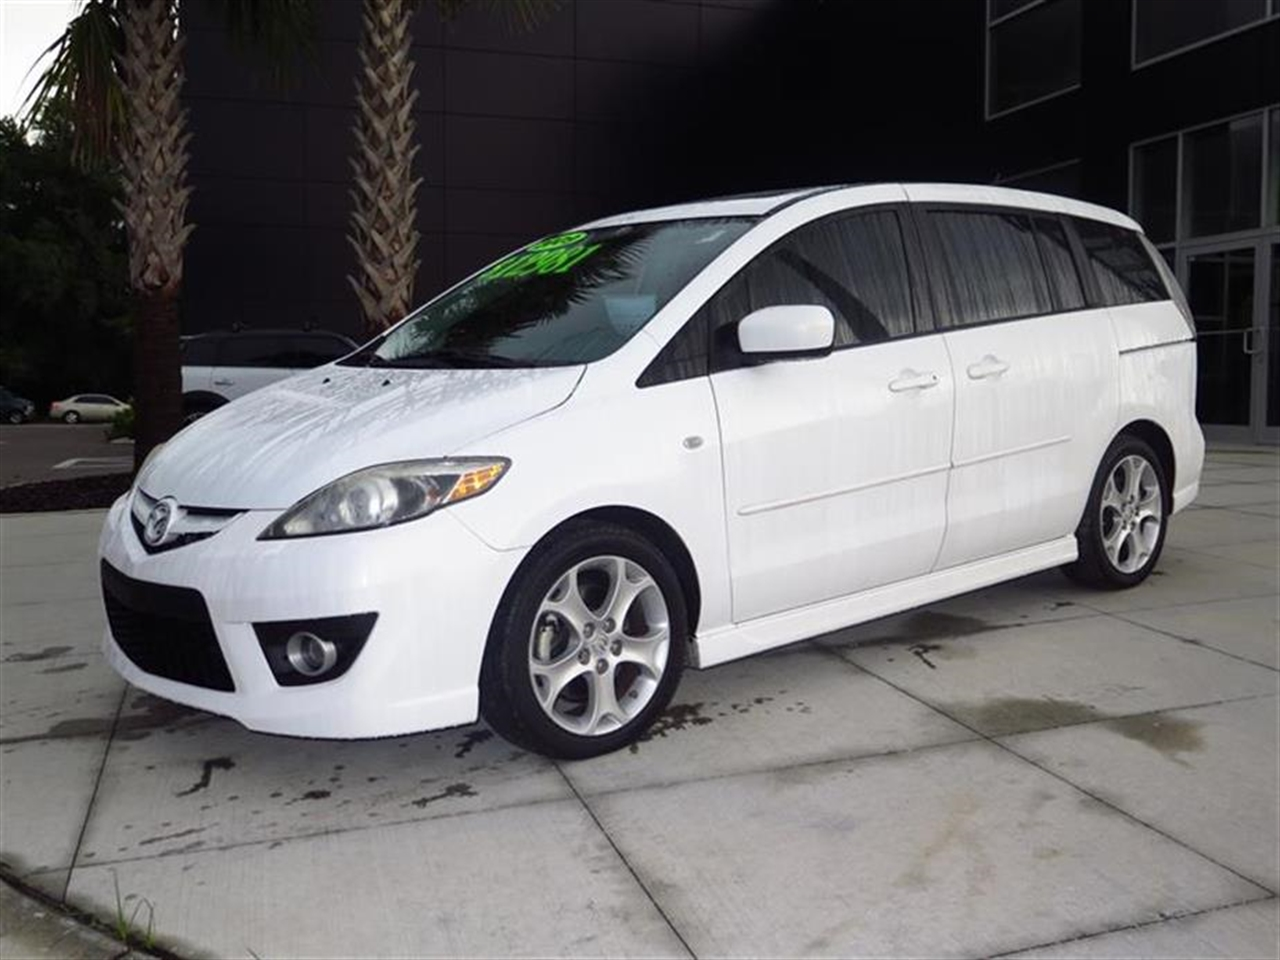 2009 MAZDA MAZDA5 4dr Wgn Auto Touring 83248 miles 2 12V pwr outlets 2 coat hooks 3 assist